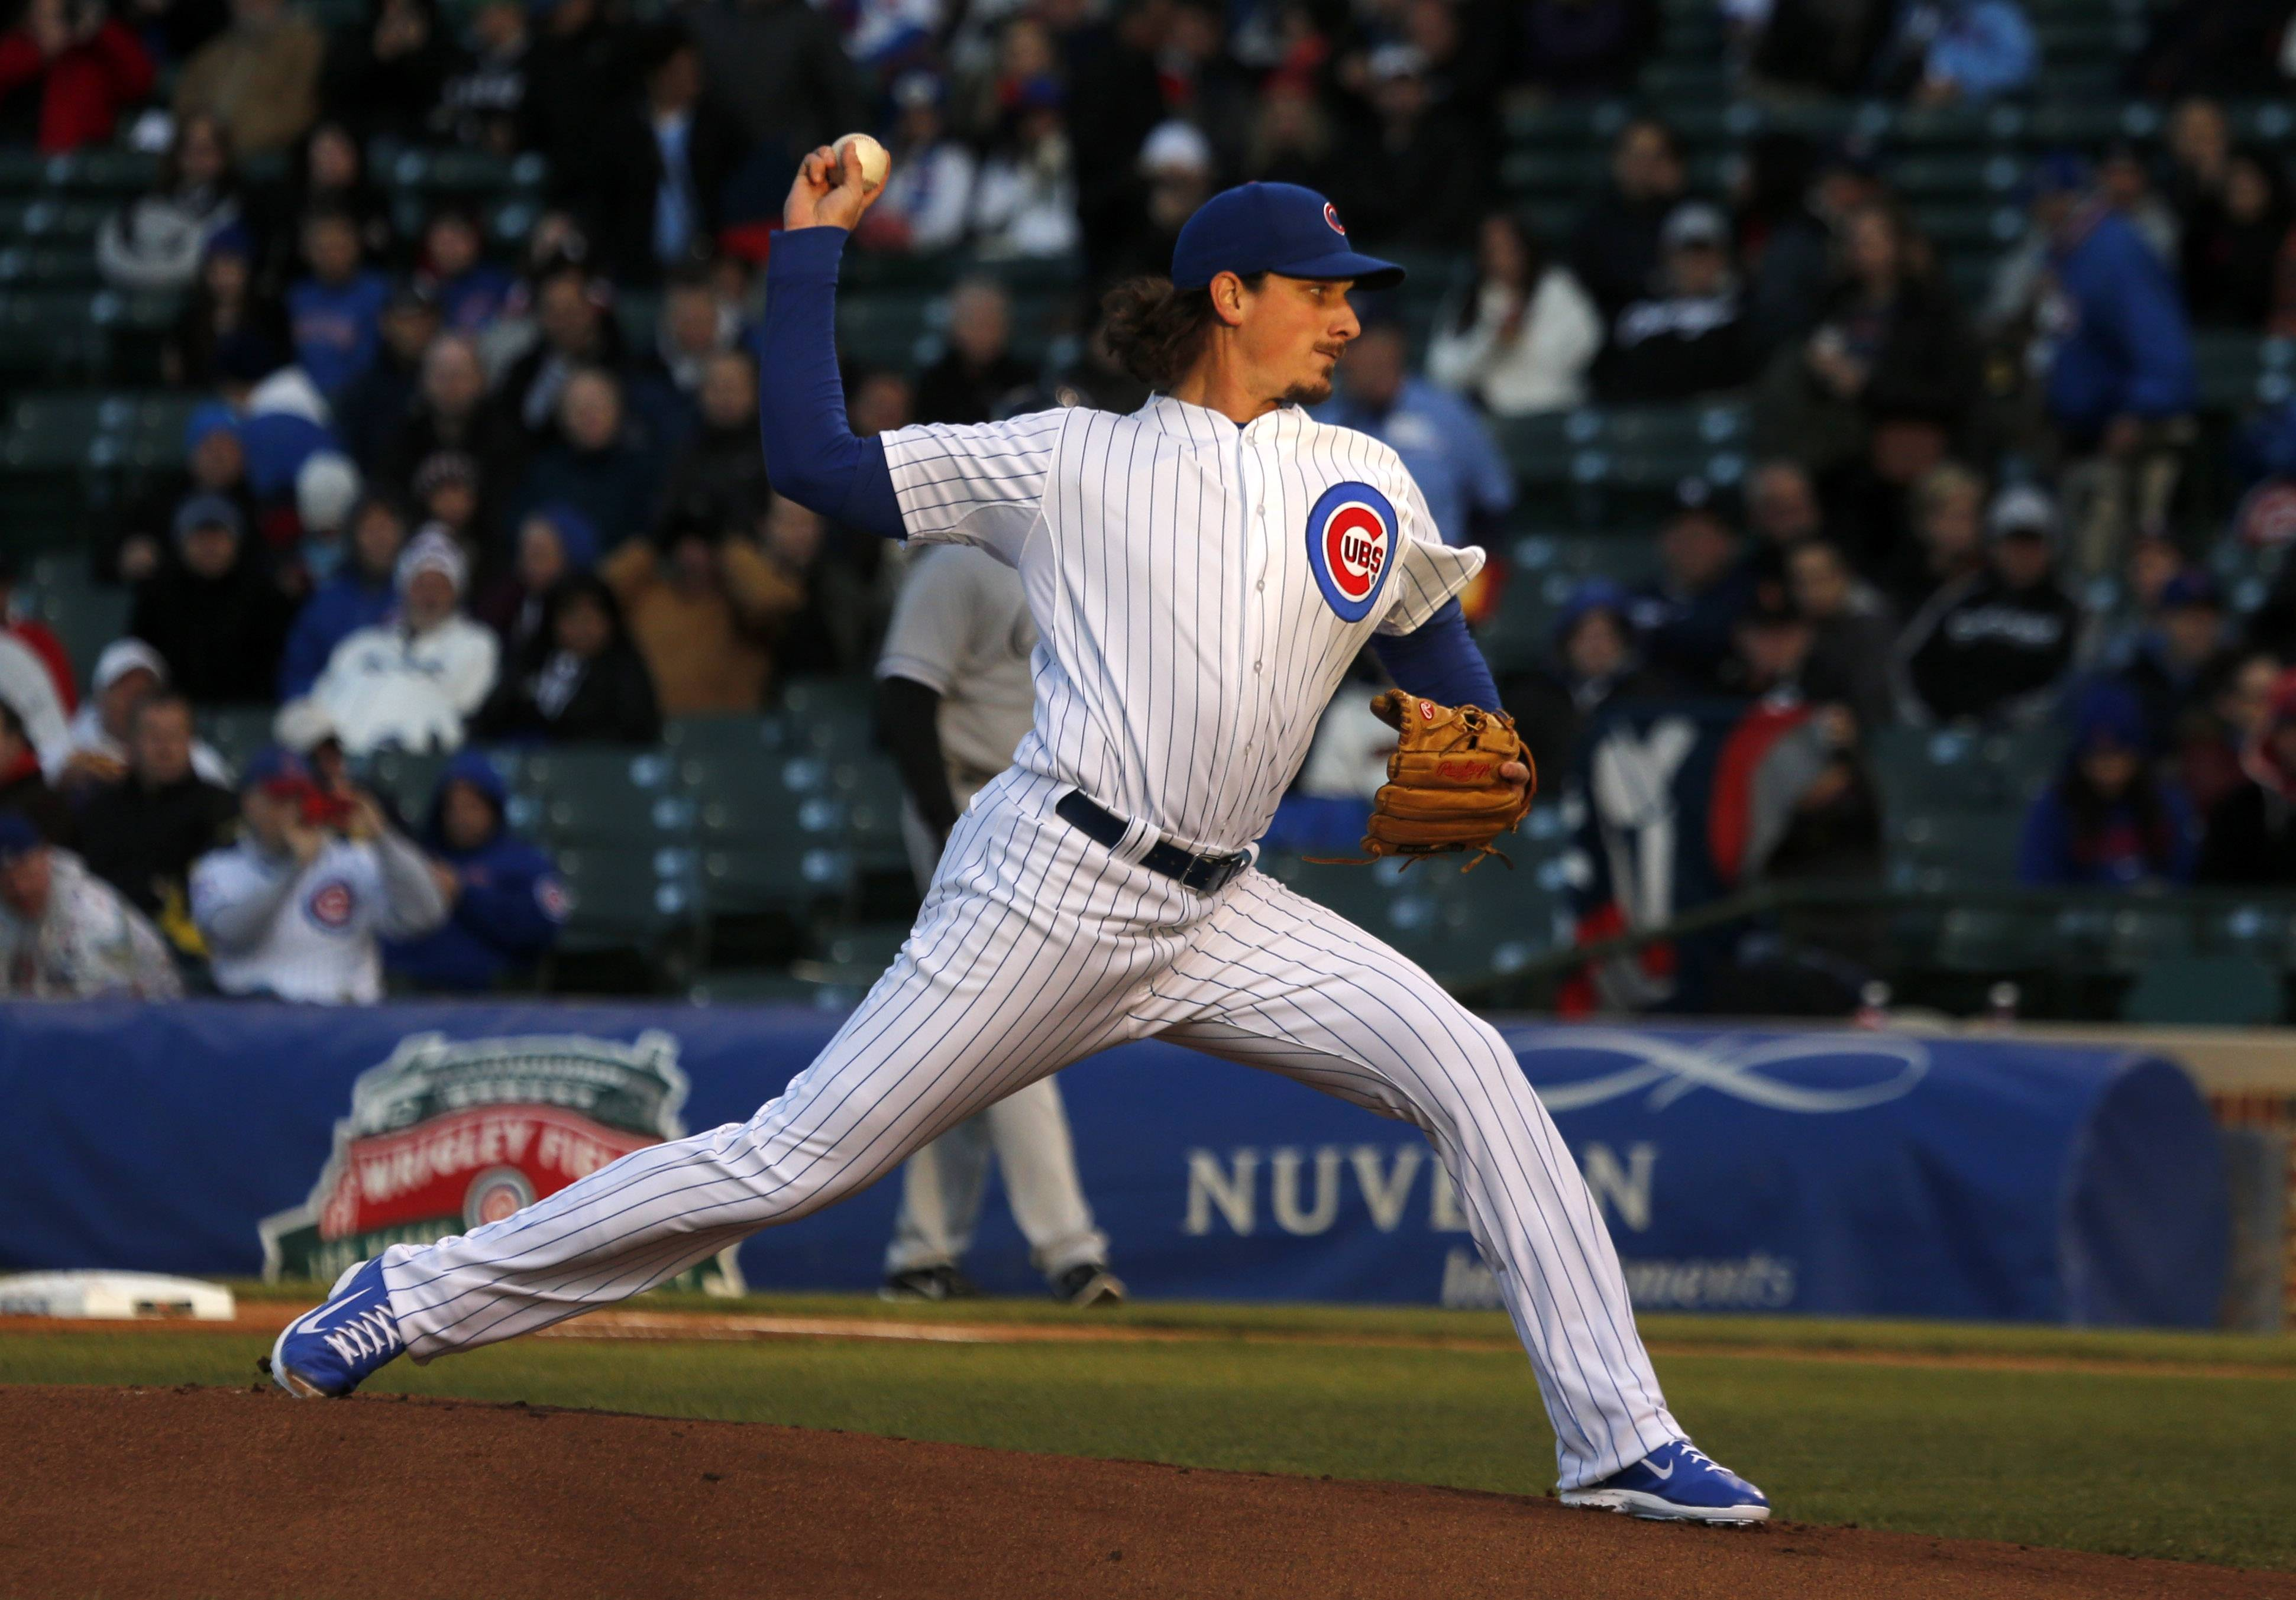 Cubs starting pitcher Jeff Samardzija delivers Monday in a late-setting sun during the first inning of an interleague baseball game against the White Sox at Wrigley Field.